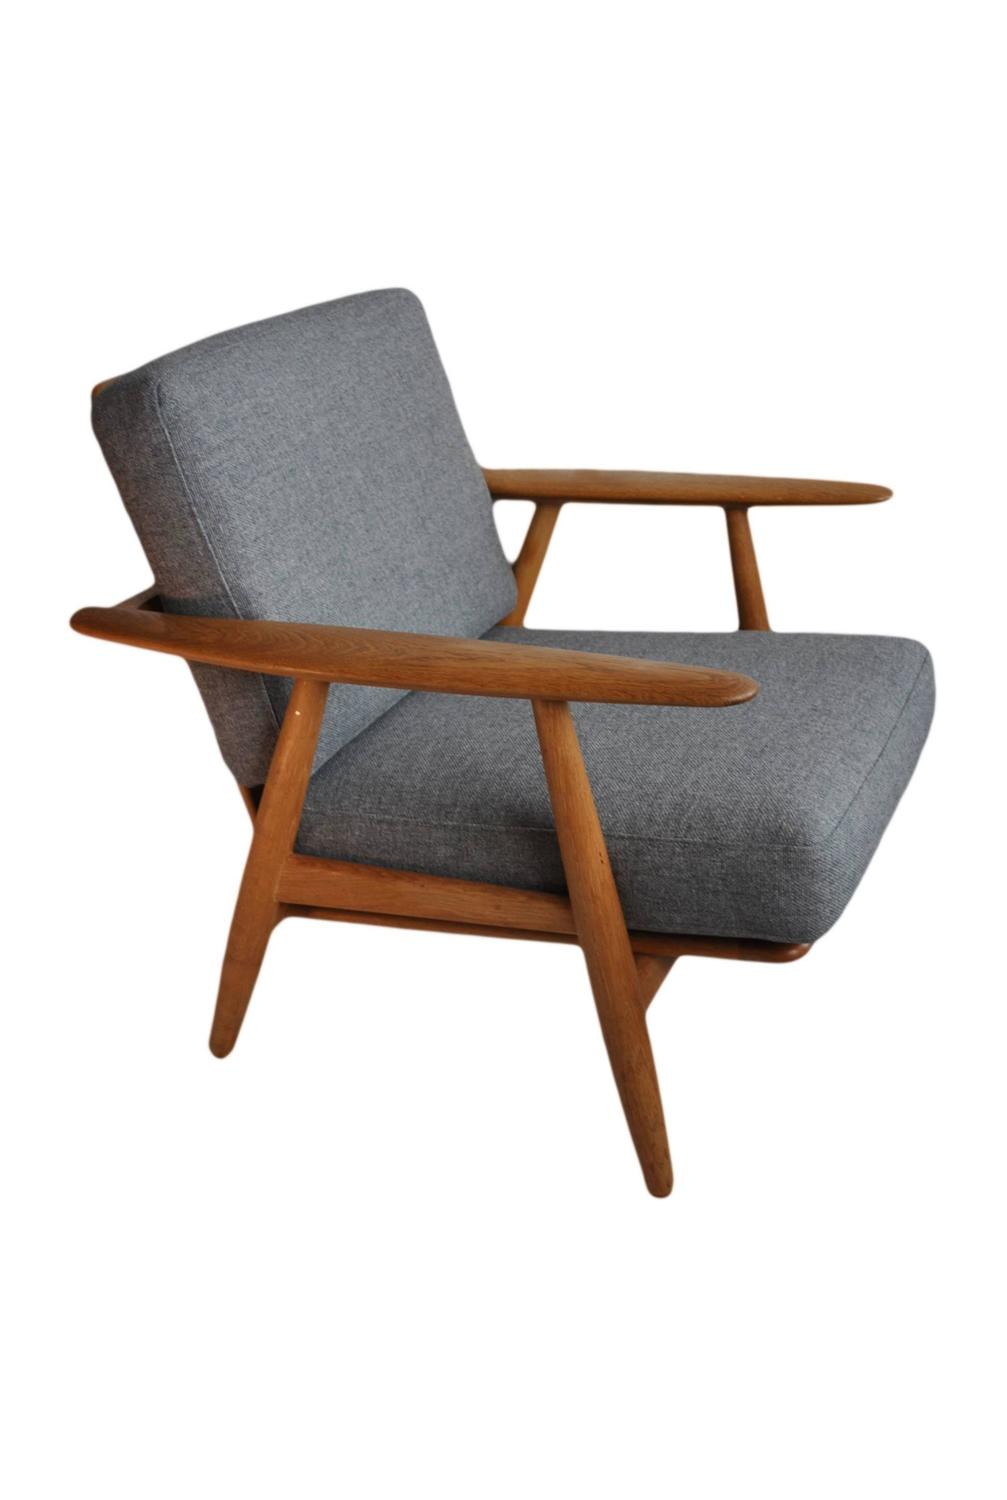 Hans J Wegner Cigar Chair Original Getama at 1stdibs